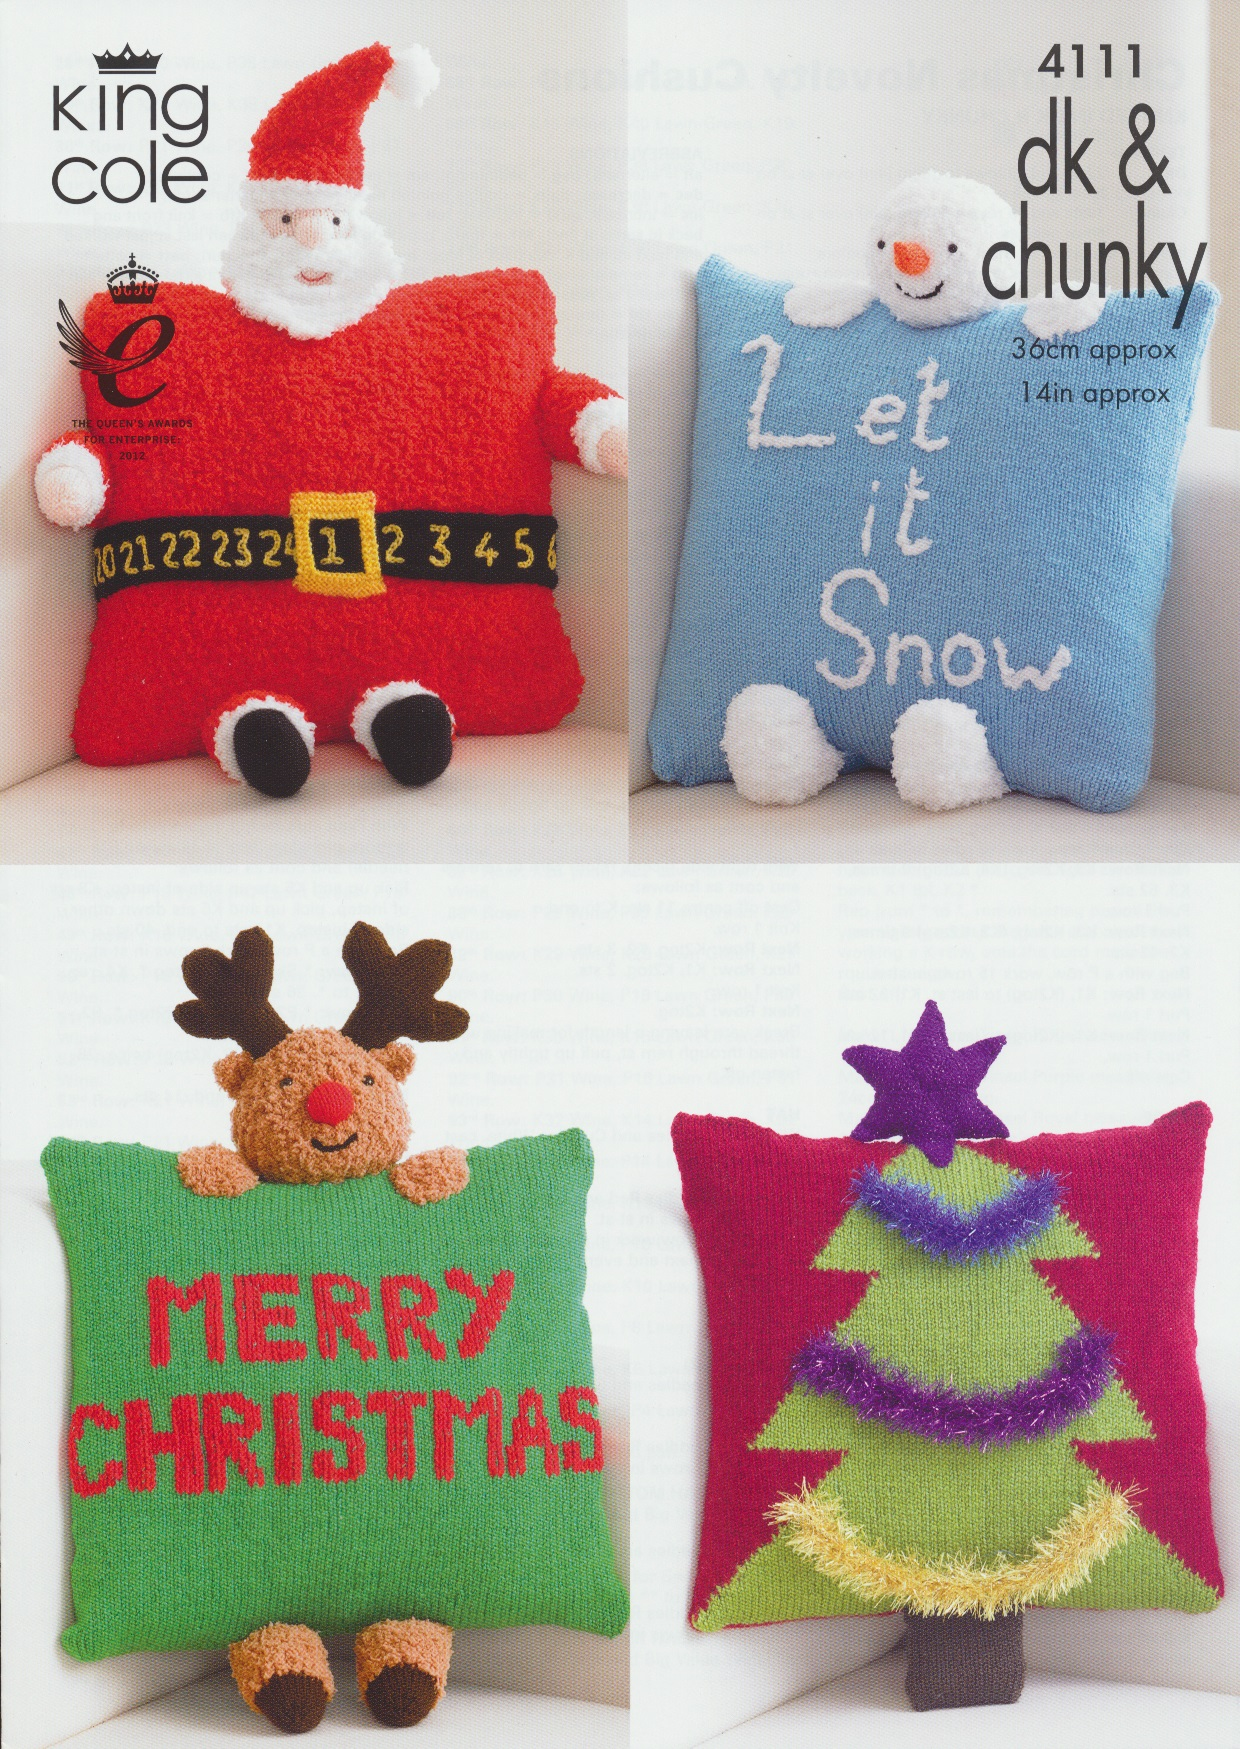 "CHRISTMAS NOVELTY CUSHIONS KING COLE PATTERN 4111 14 /"" approx. DK /& CHUNKY"